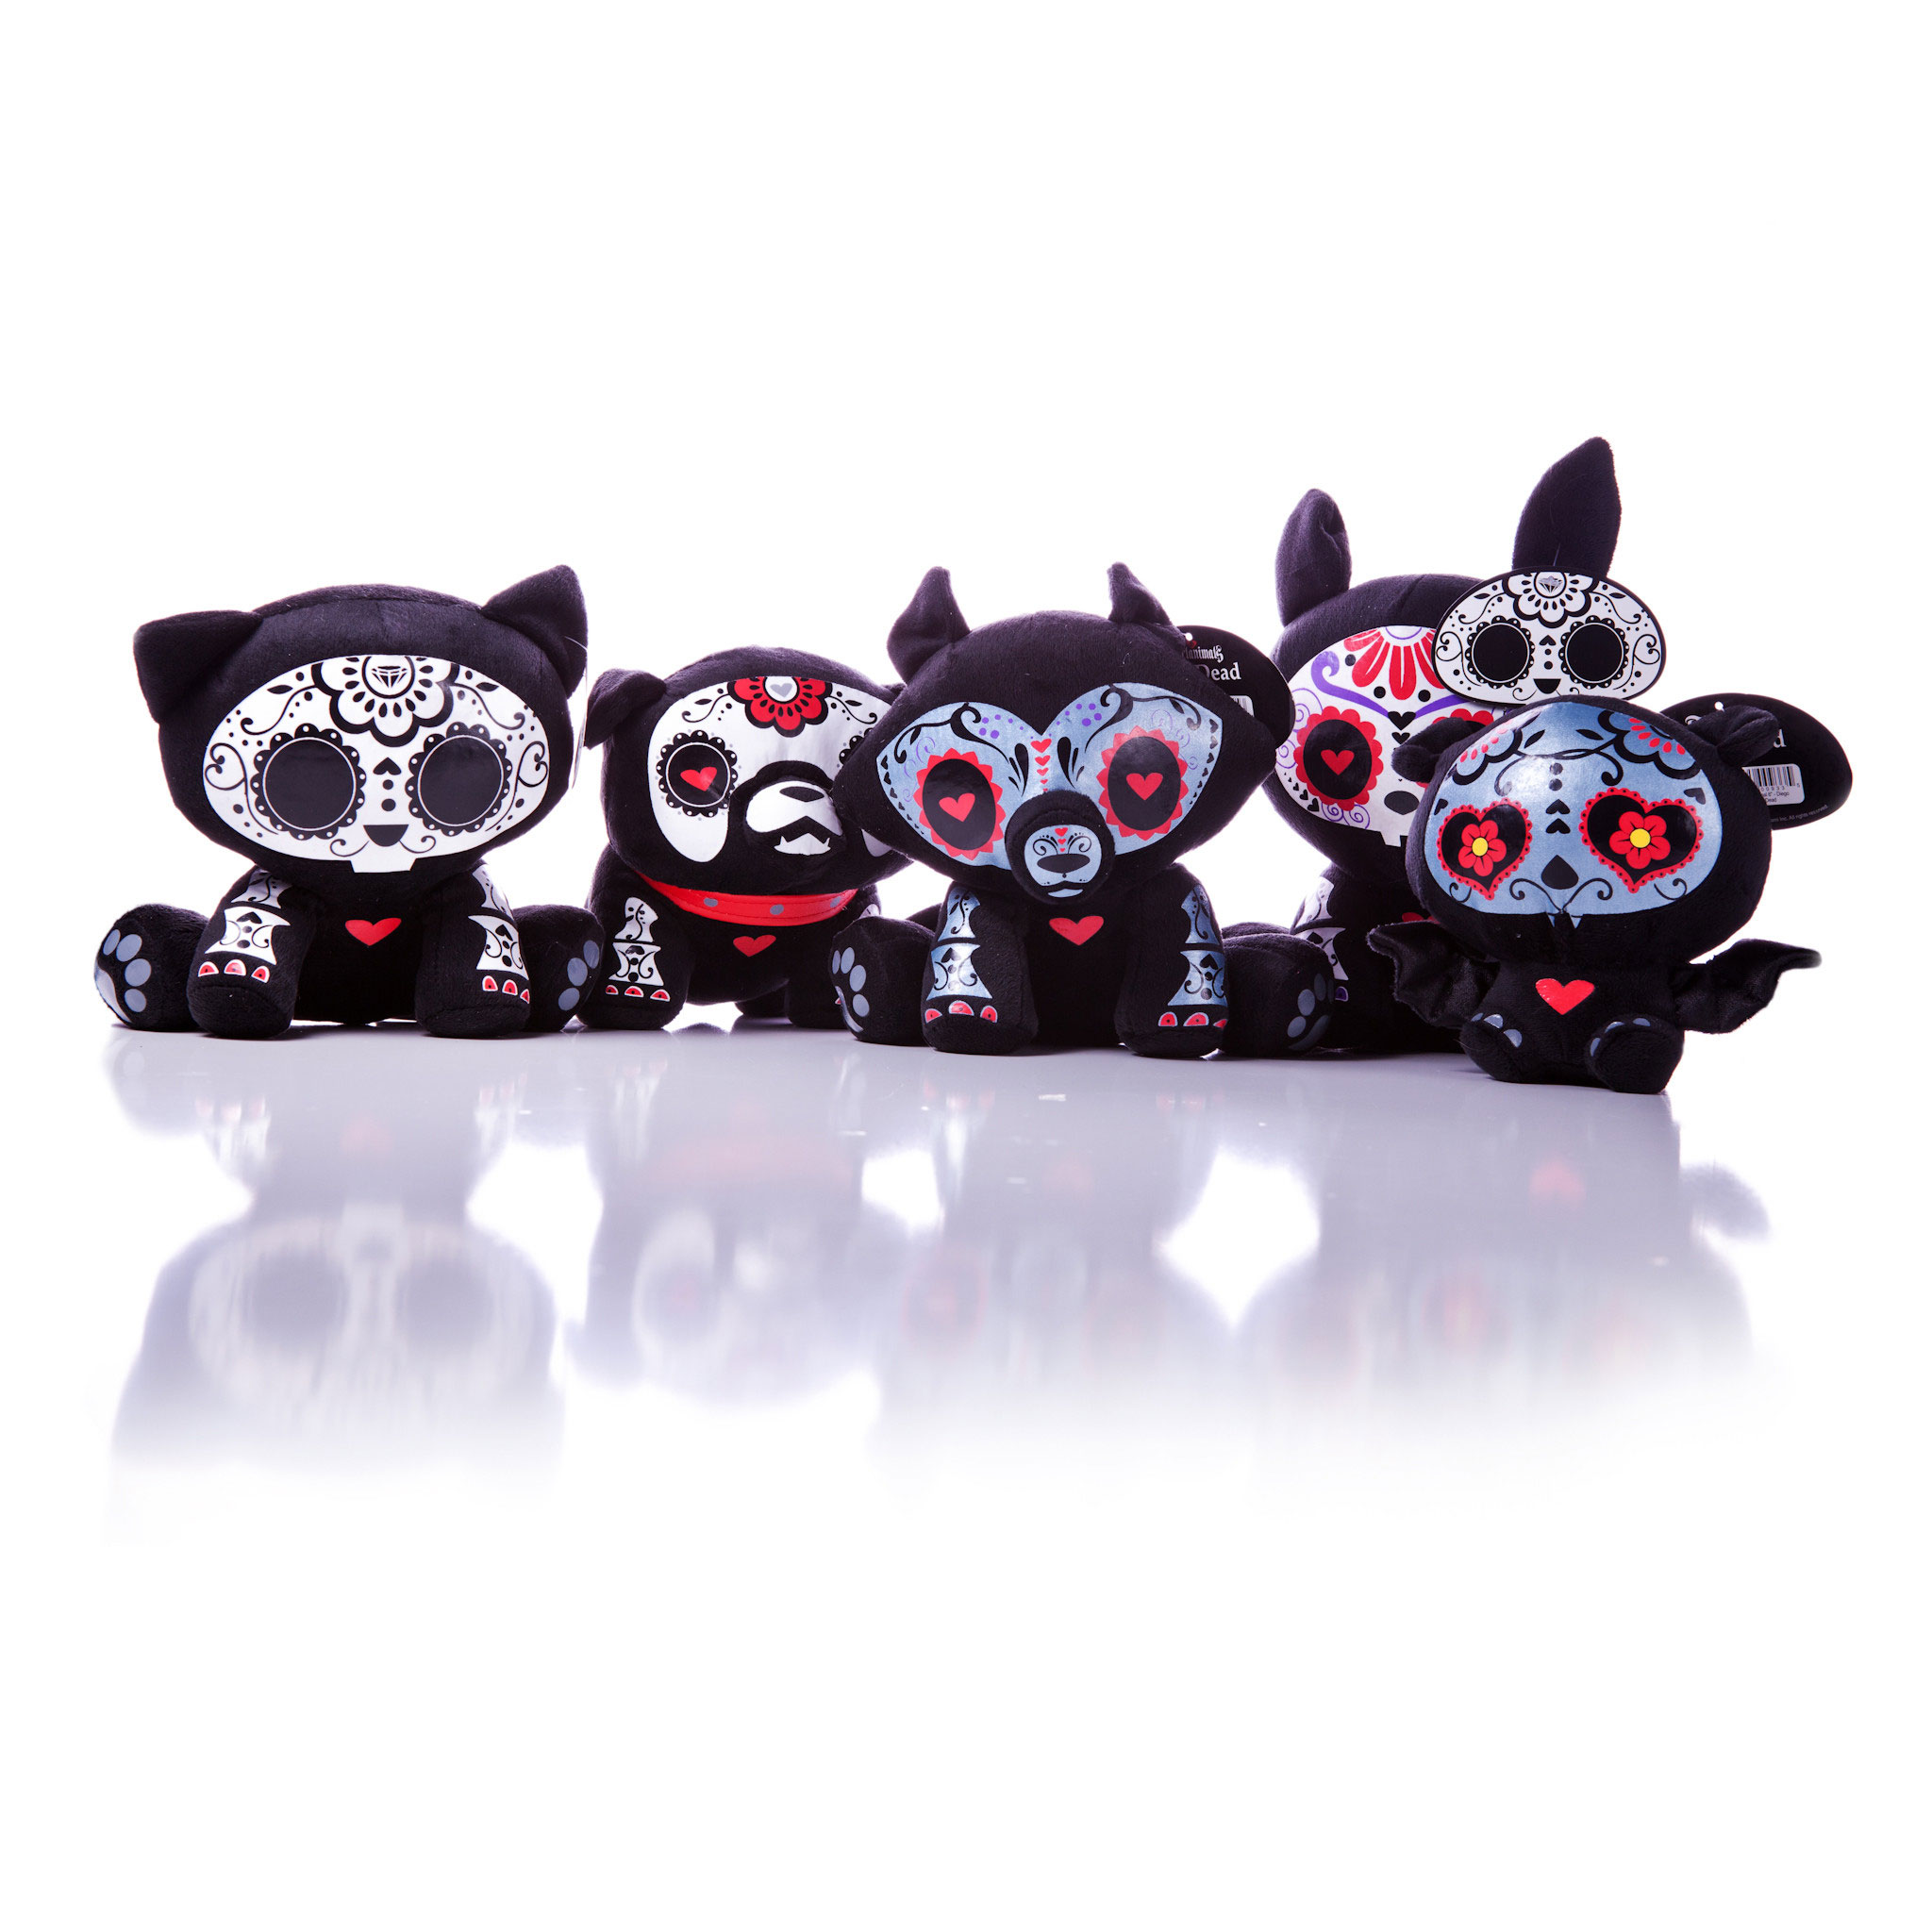 Skelanimals DOTD Plush Group Shot